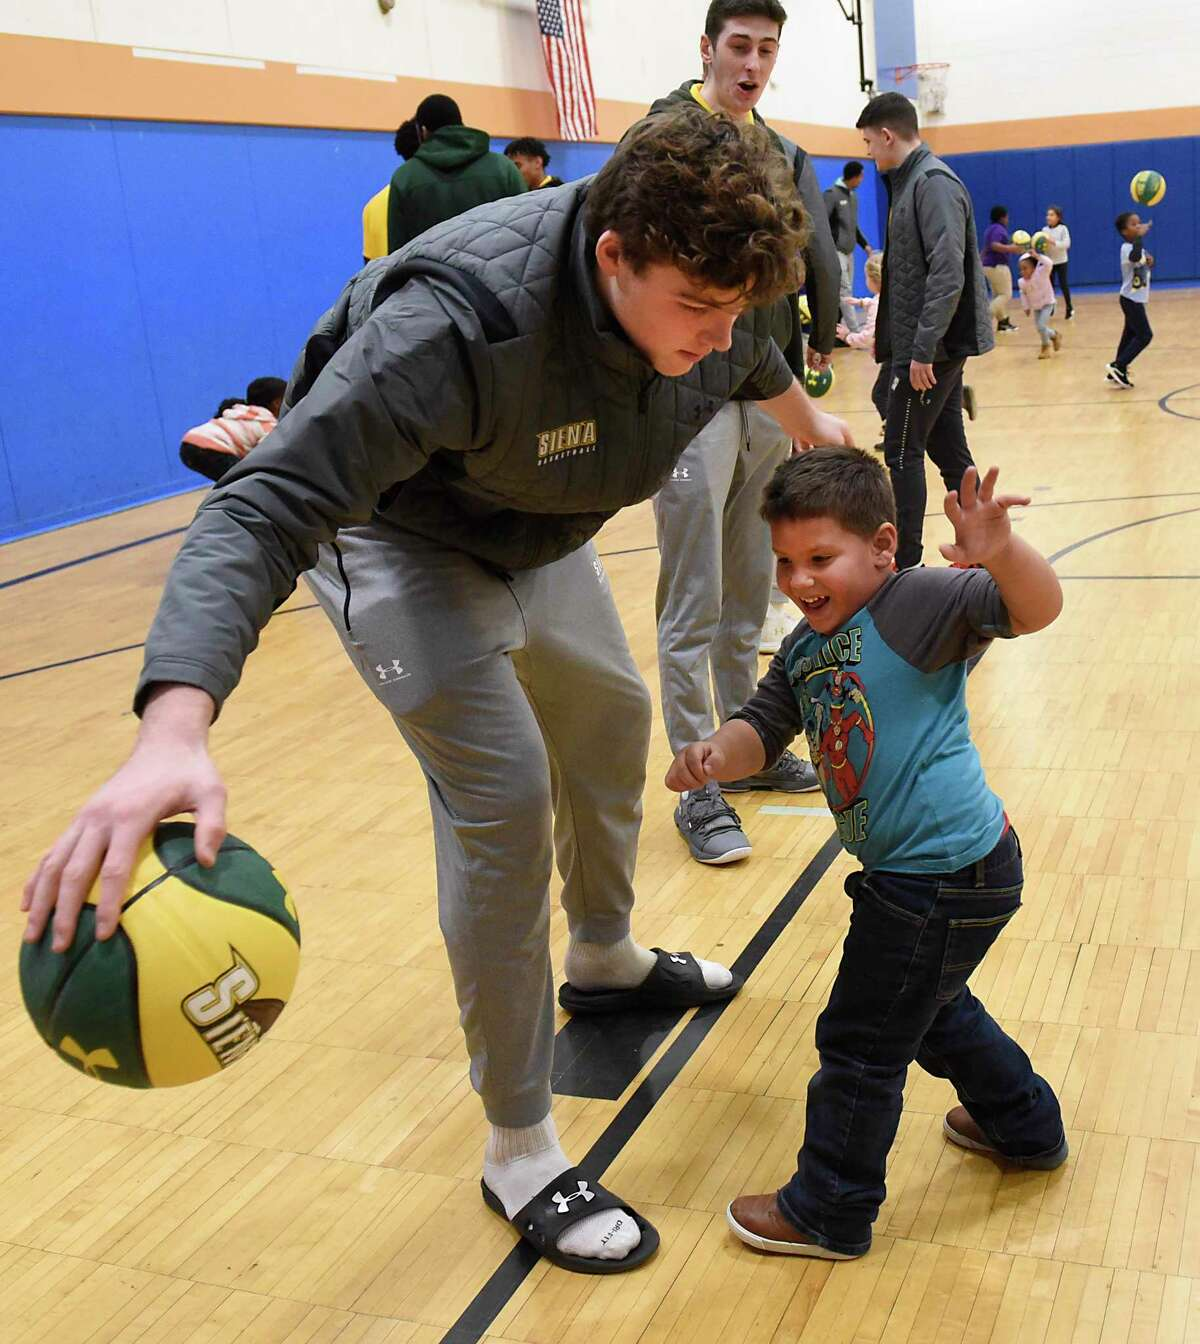 Isaiah Colon, right, gets some dribbling tips from Siena basketball player Kyle Young at the Boys & Girls Clubs of the Capital AreaA?•s Troy Clubhouse on Monday, Dec. 16, 2019 in Troy, N.Y. Players and coaches from the Siena menA?•s basketball team hosted a clinic for local young athletes. (Lori Van Buren/Times Union)